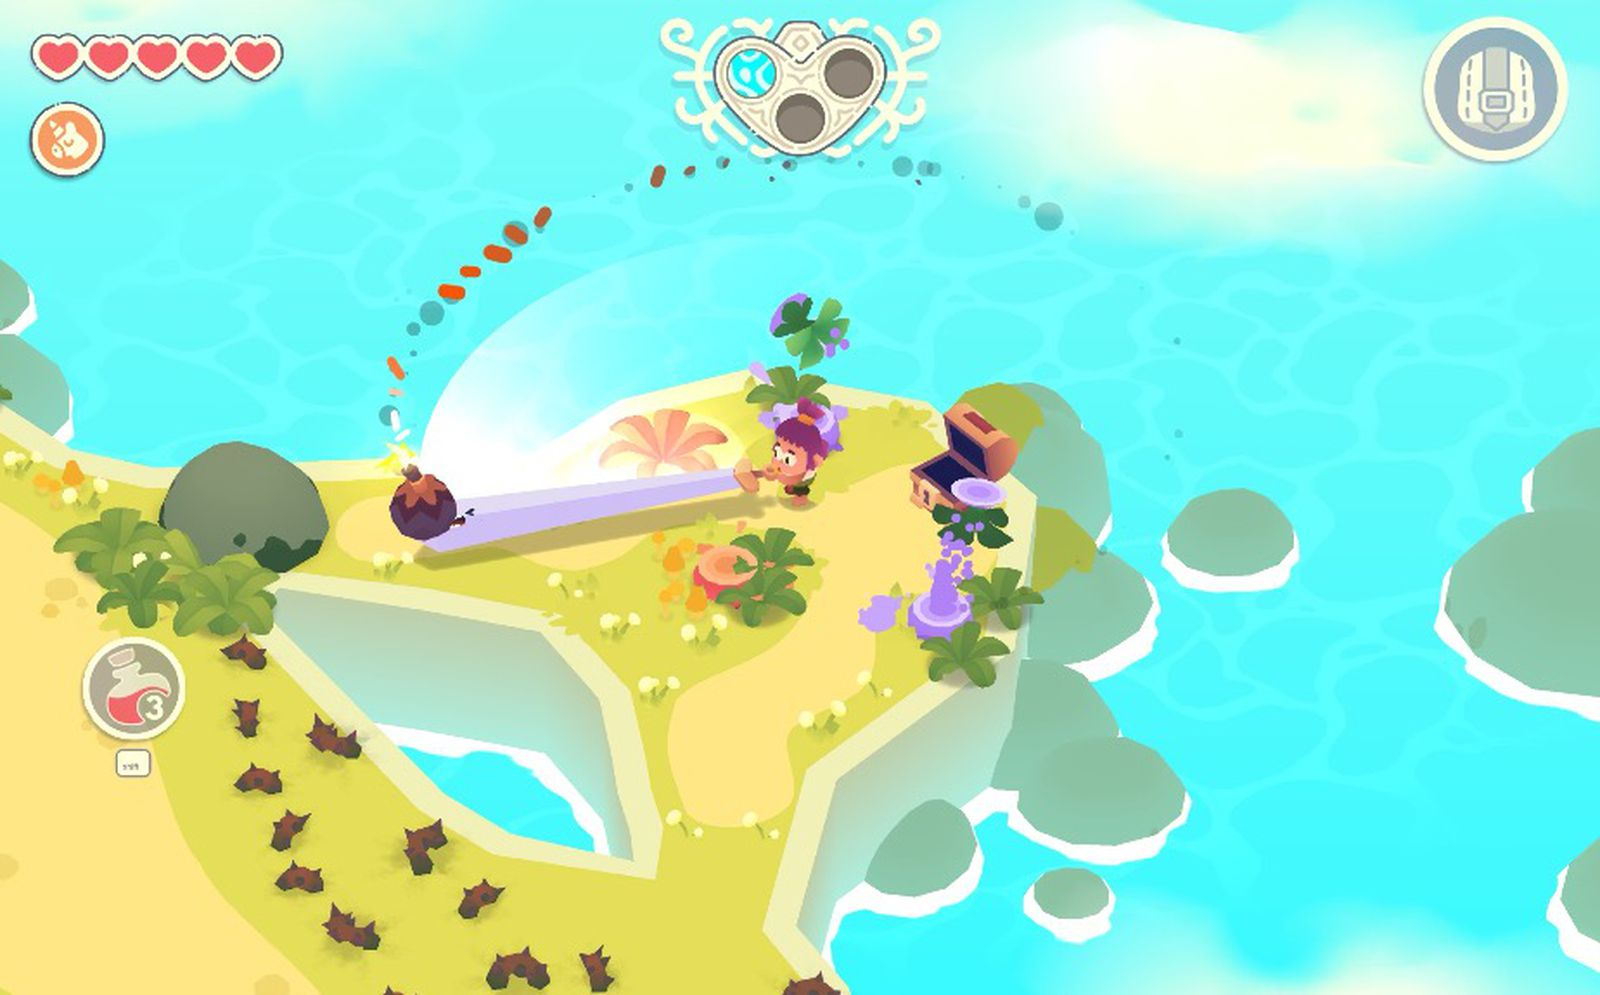 'Slash Quest!' Arrives on Apple Arcade